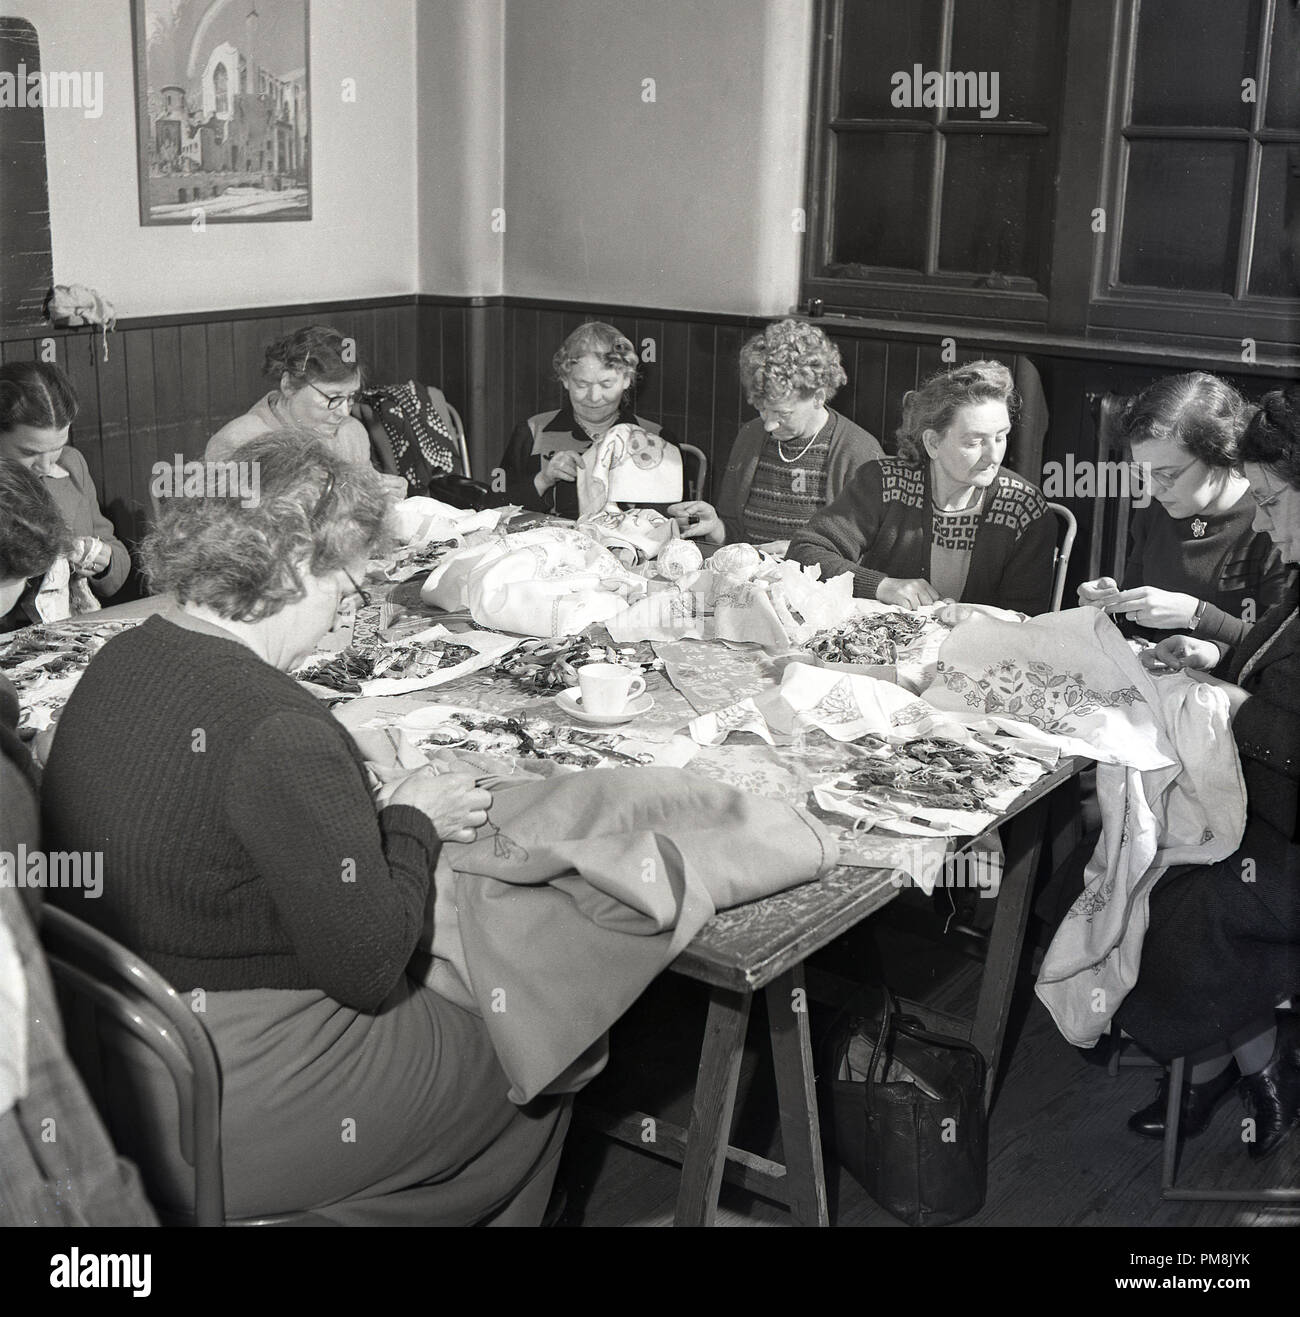 1950s,historical, a group of ladies inside a village hall sitting together around a table doing a decorative sewing or needlework evening class, England, UK. - Stock Image